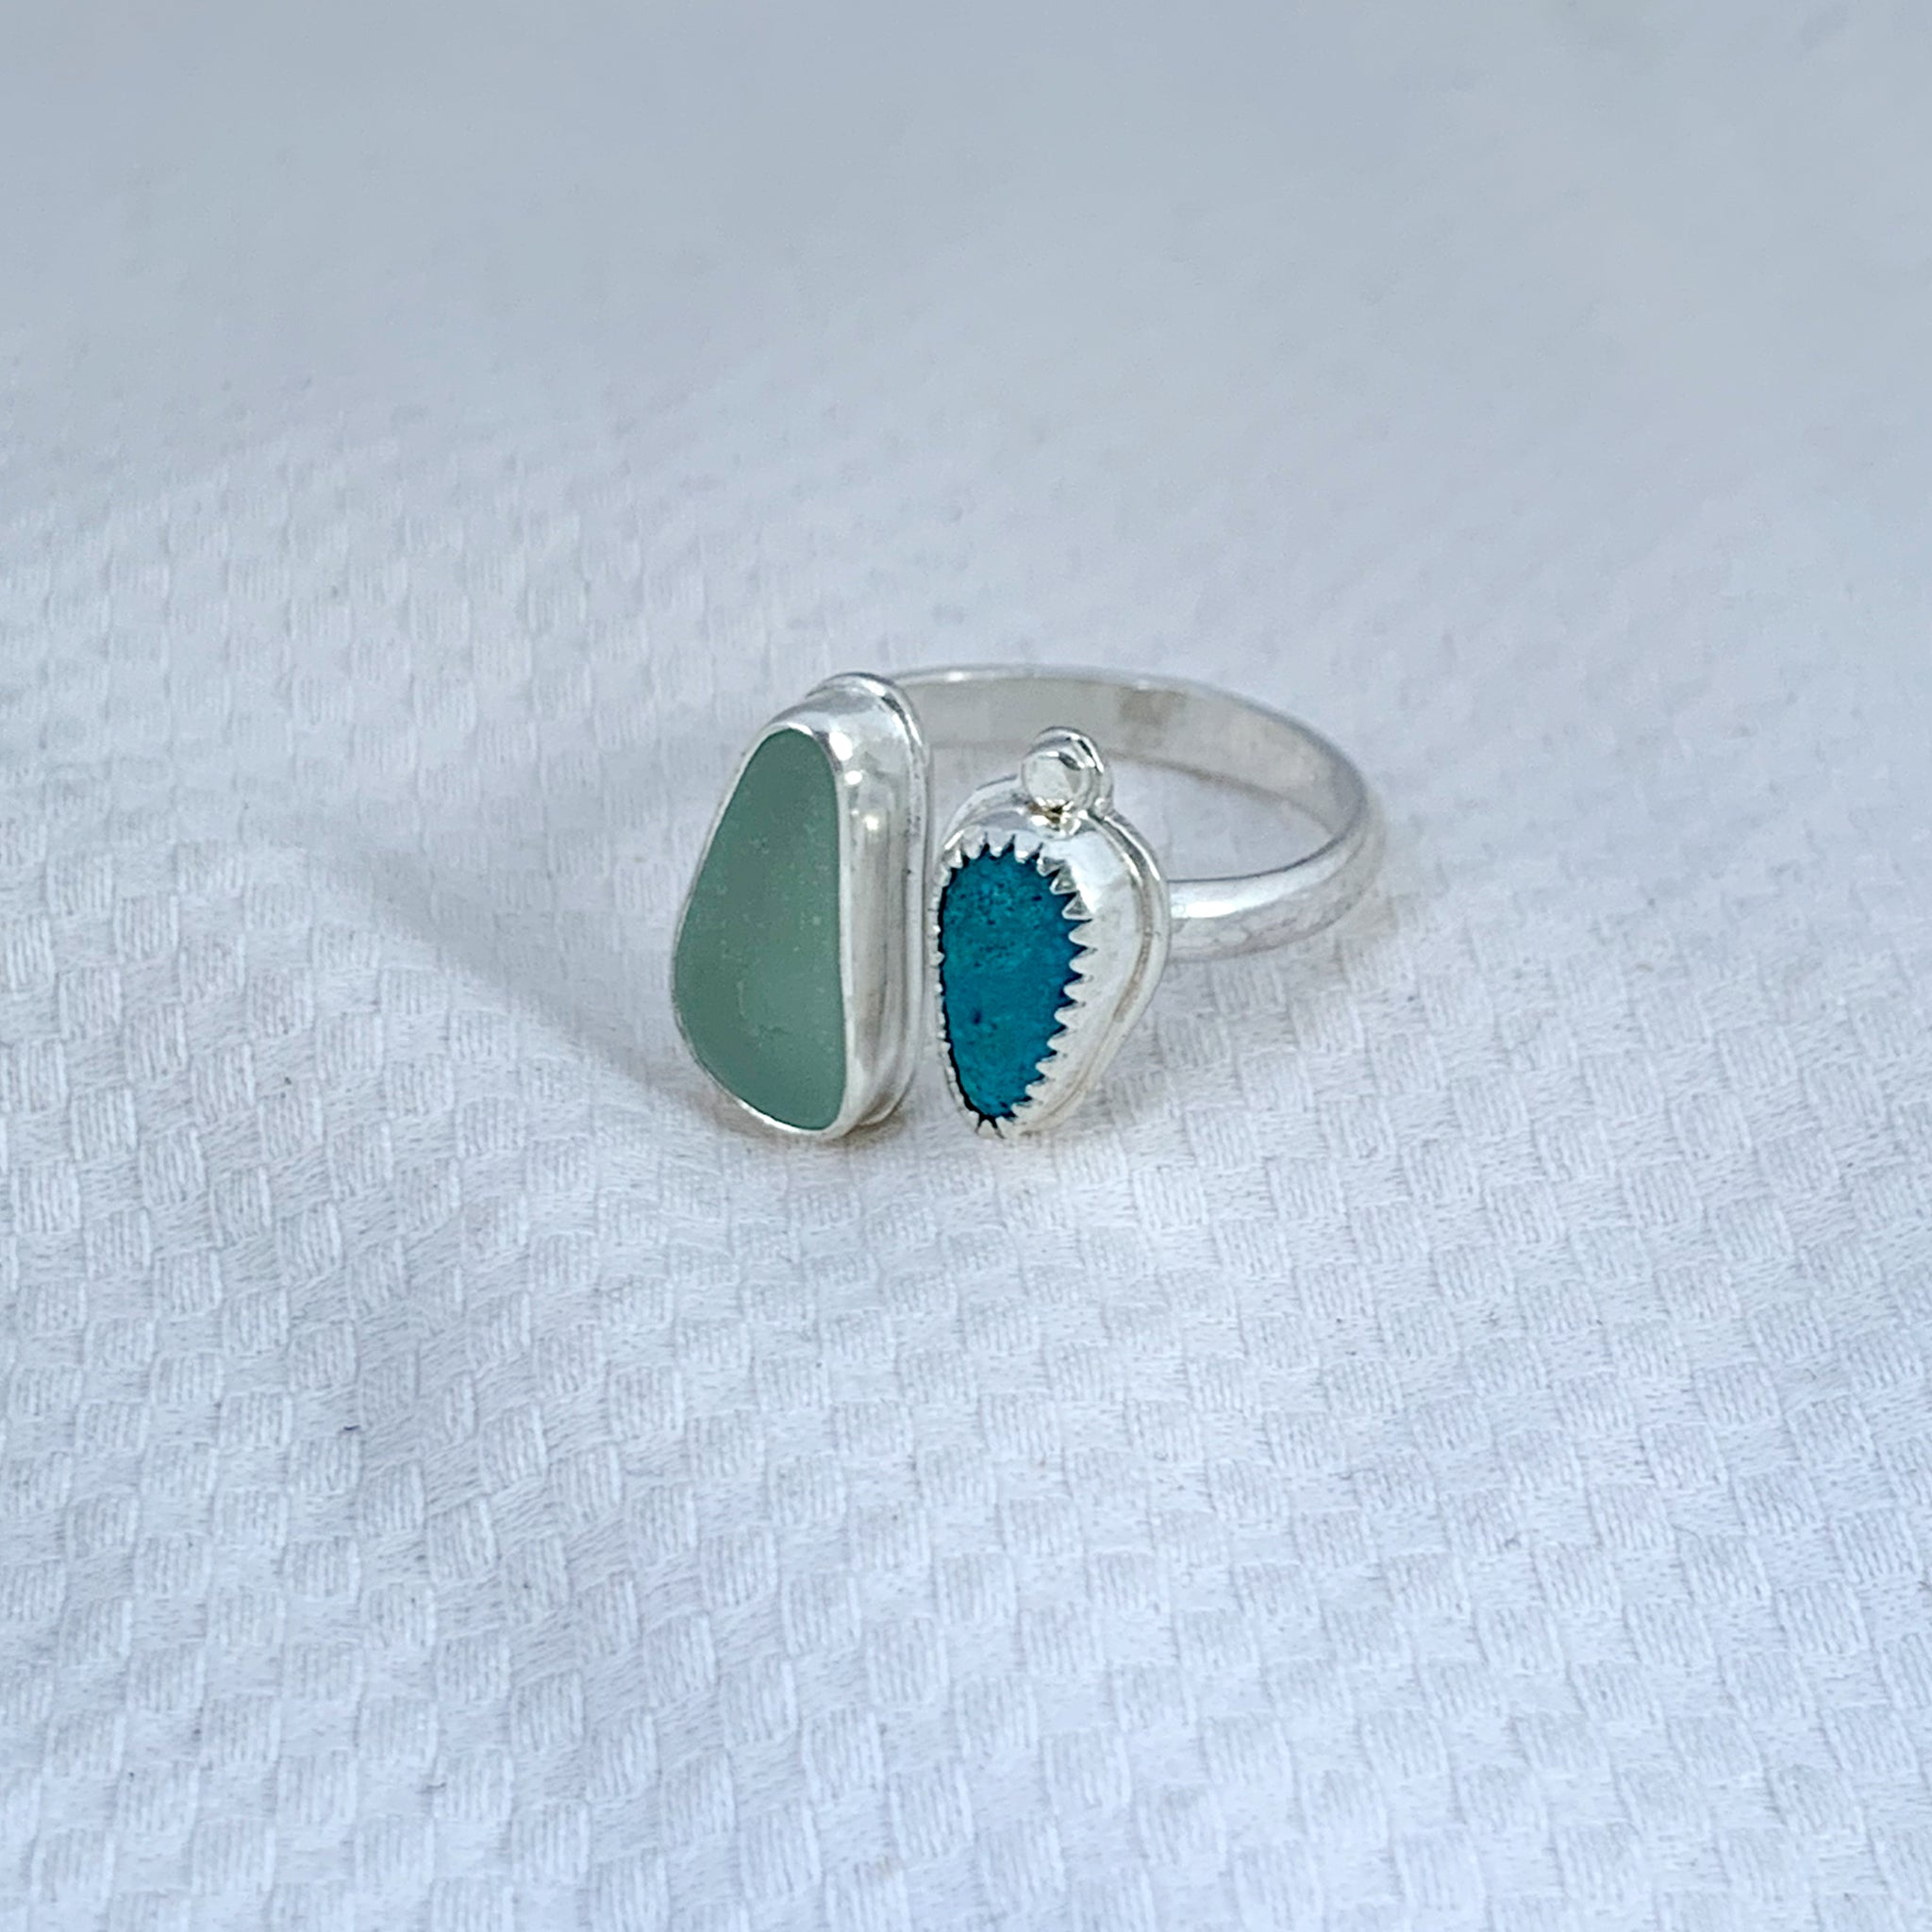 Two Treasures Ring with Turquoise + Seaglass Size 8 1/2